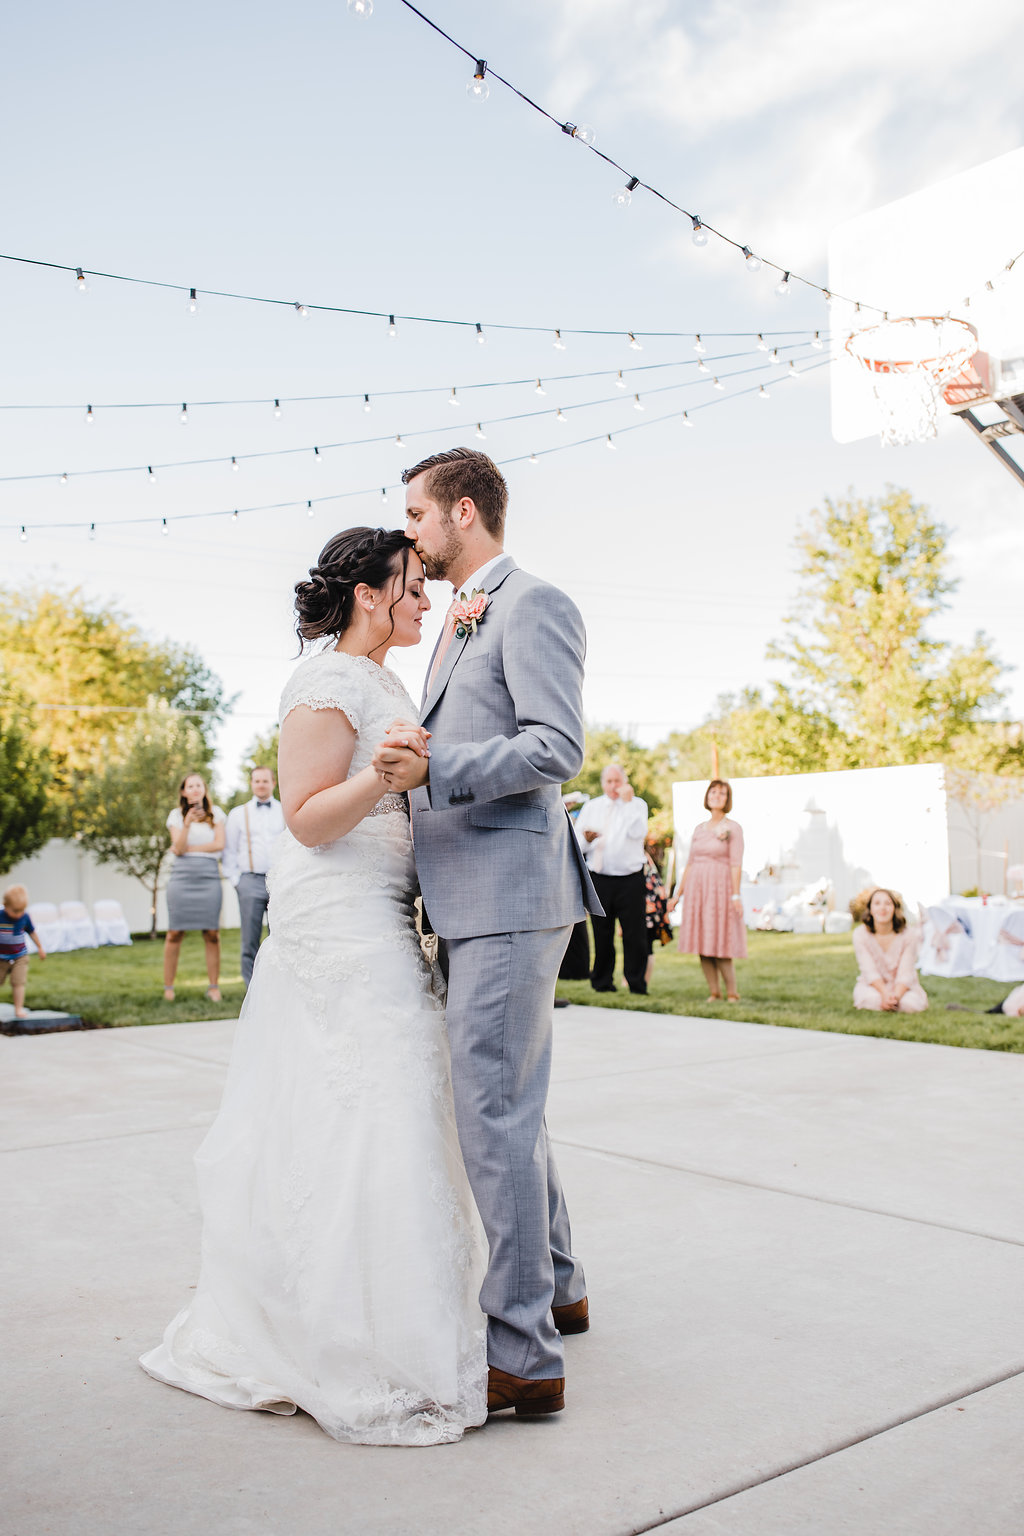 first dance as husband and wife wedding day first dance bride and groom central utah wedding day photography